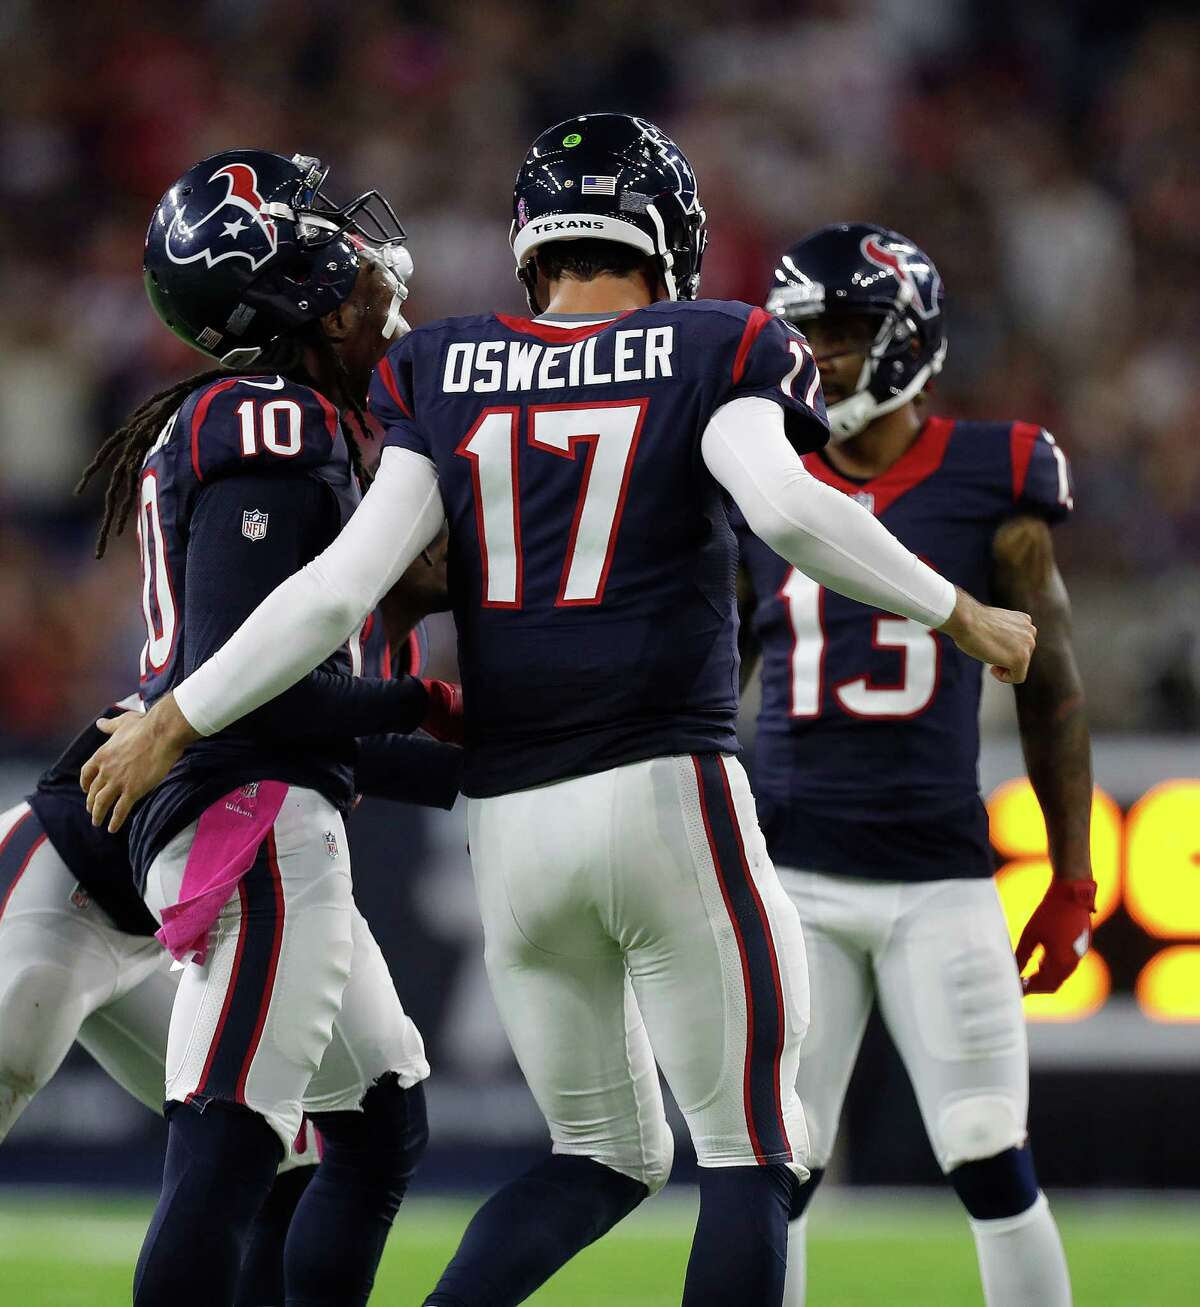 FIVE UP 1. Texans quarterback Brock Osweiler Osweiler had a resurgent late-game performance, completing 25 of 39 passes for 269 yards, two touchdowns and one interception for a 90.7 passer rating.  Osweiler completed 11 of 22 passes for 89 yards, one interception and a 41.7 rating through three quarters. In the fourth quarter and overtime combined, he completed 14 of 17 passes for 180 yards, two touchdowns and a 143.8 passer rating. He displayed confidence and command, the kind the Texans hoped for when they signed him to a four-year, $72 million deal.